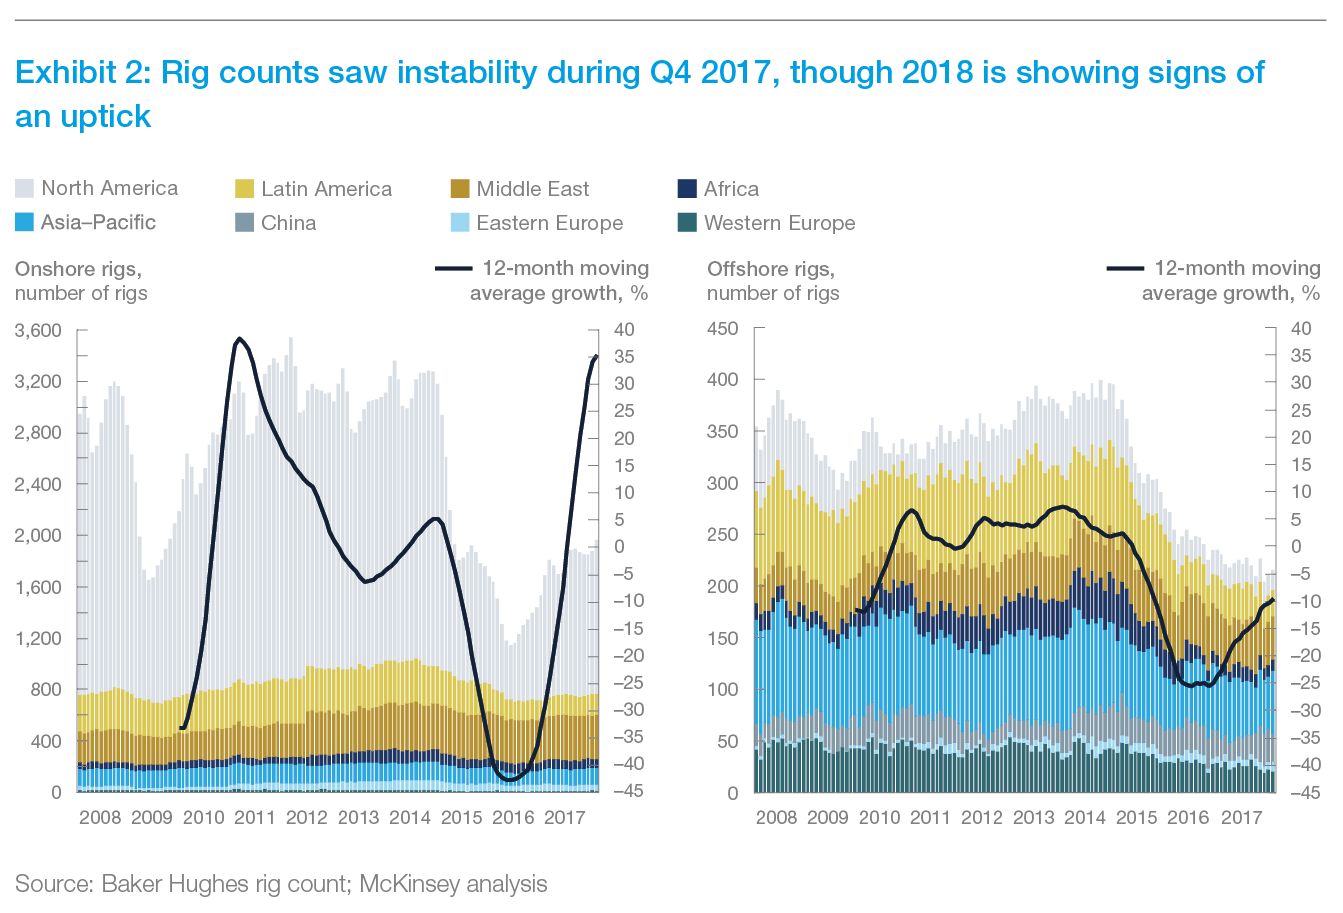 Exhibit 2: Rig counts saw instability during Q4 2017, though 2018 is showing signs of an uptick